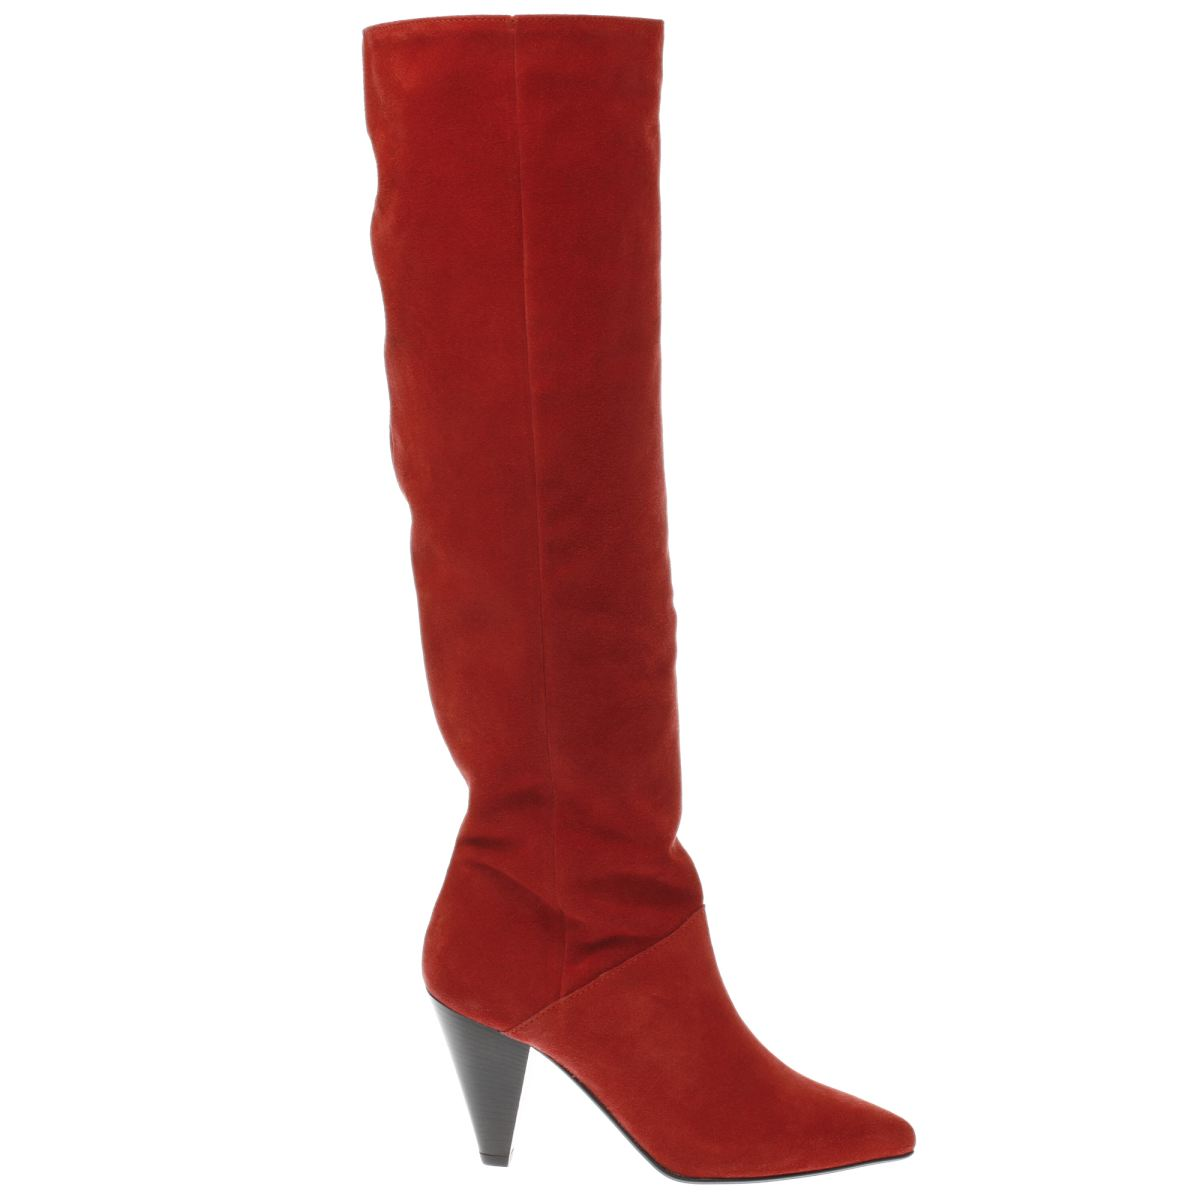 Schuh Red Epic Boots